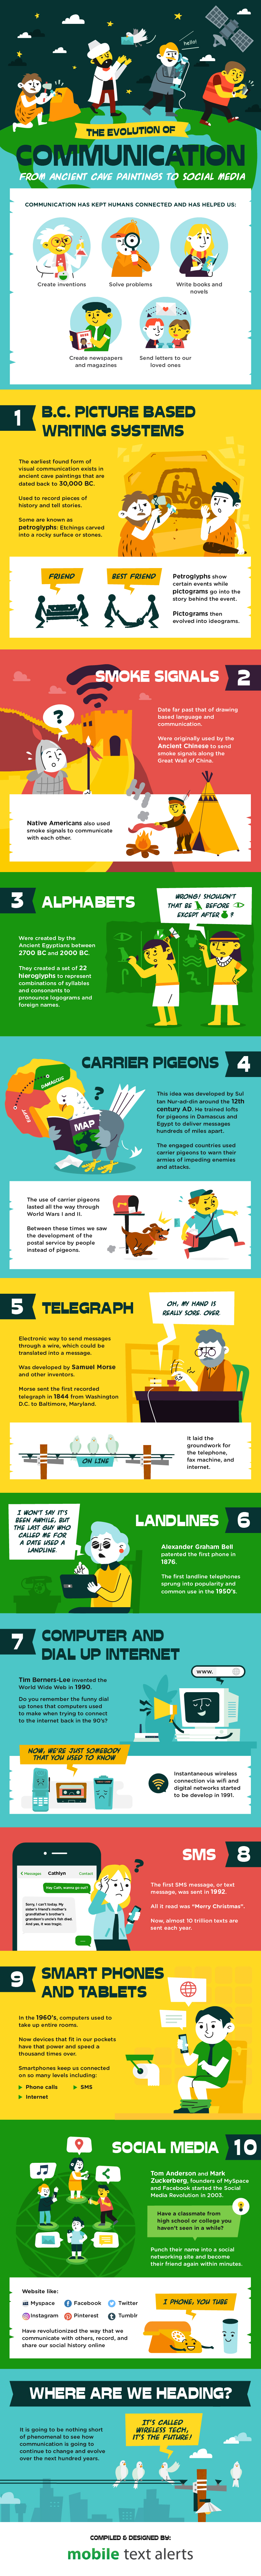 How Communication Developed Through the Ages: 10 Gigantic Evolutionary Milestones - Infographic